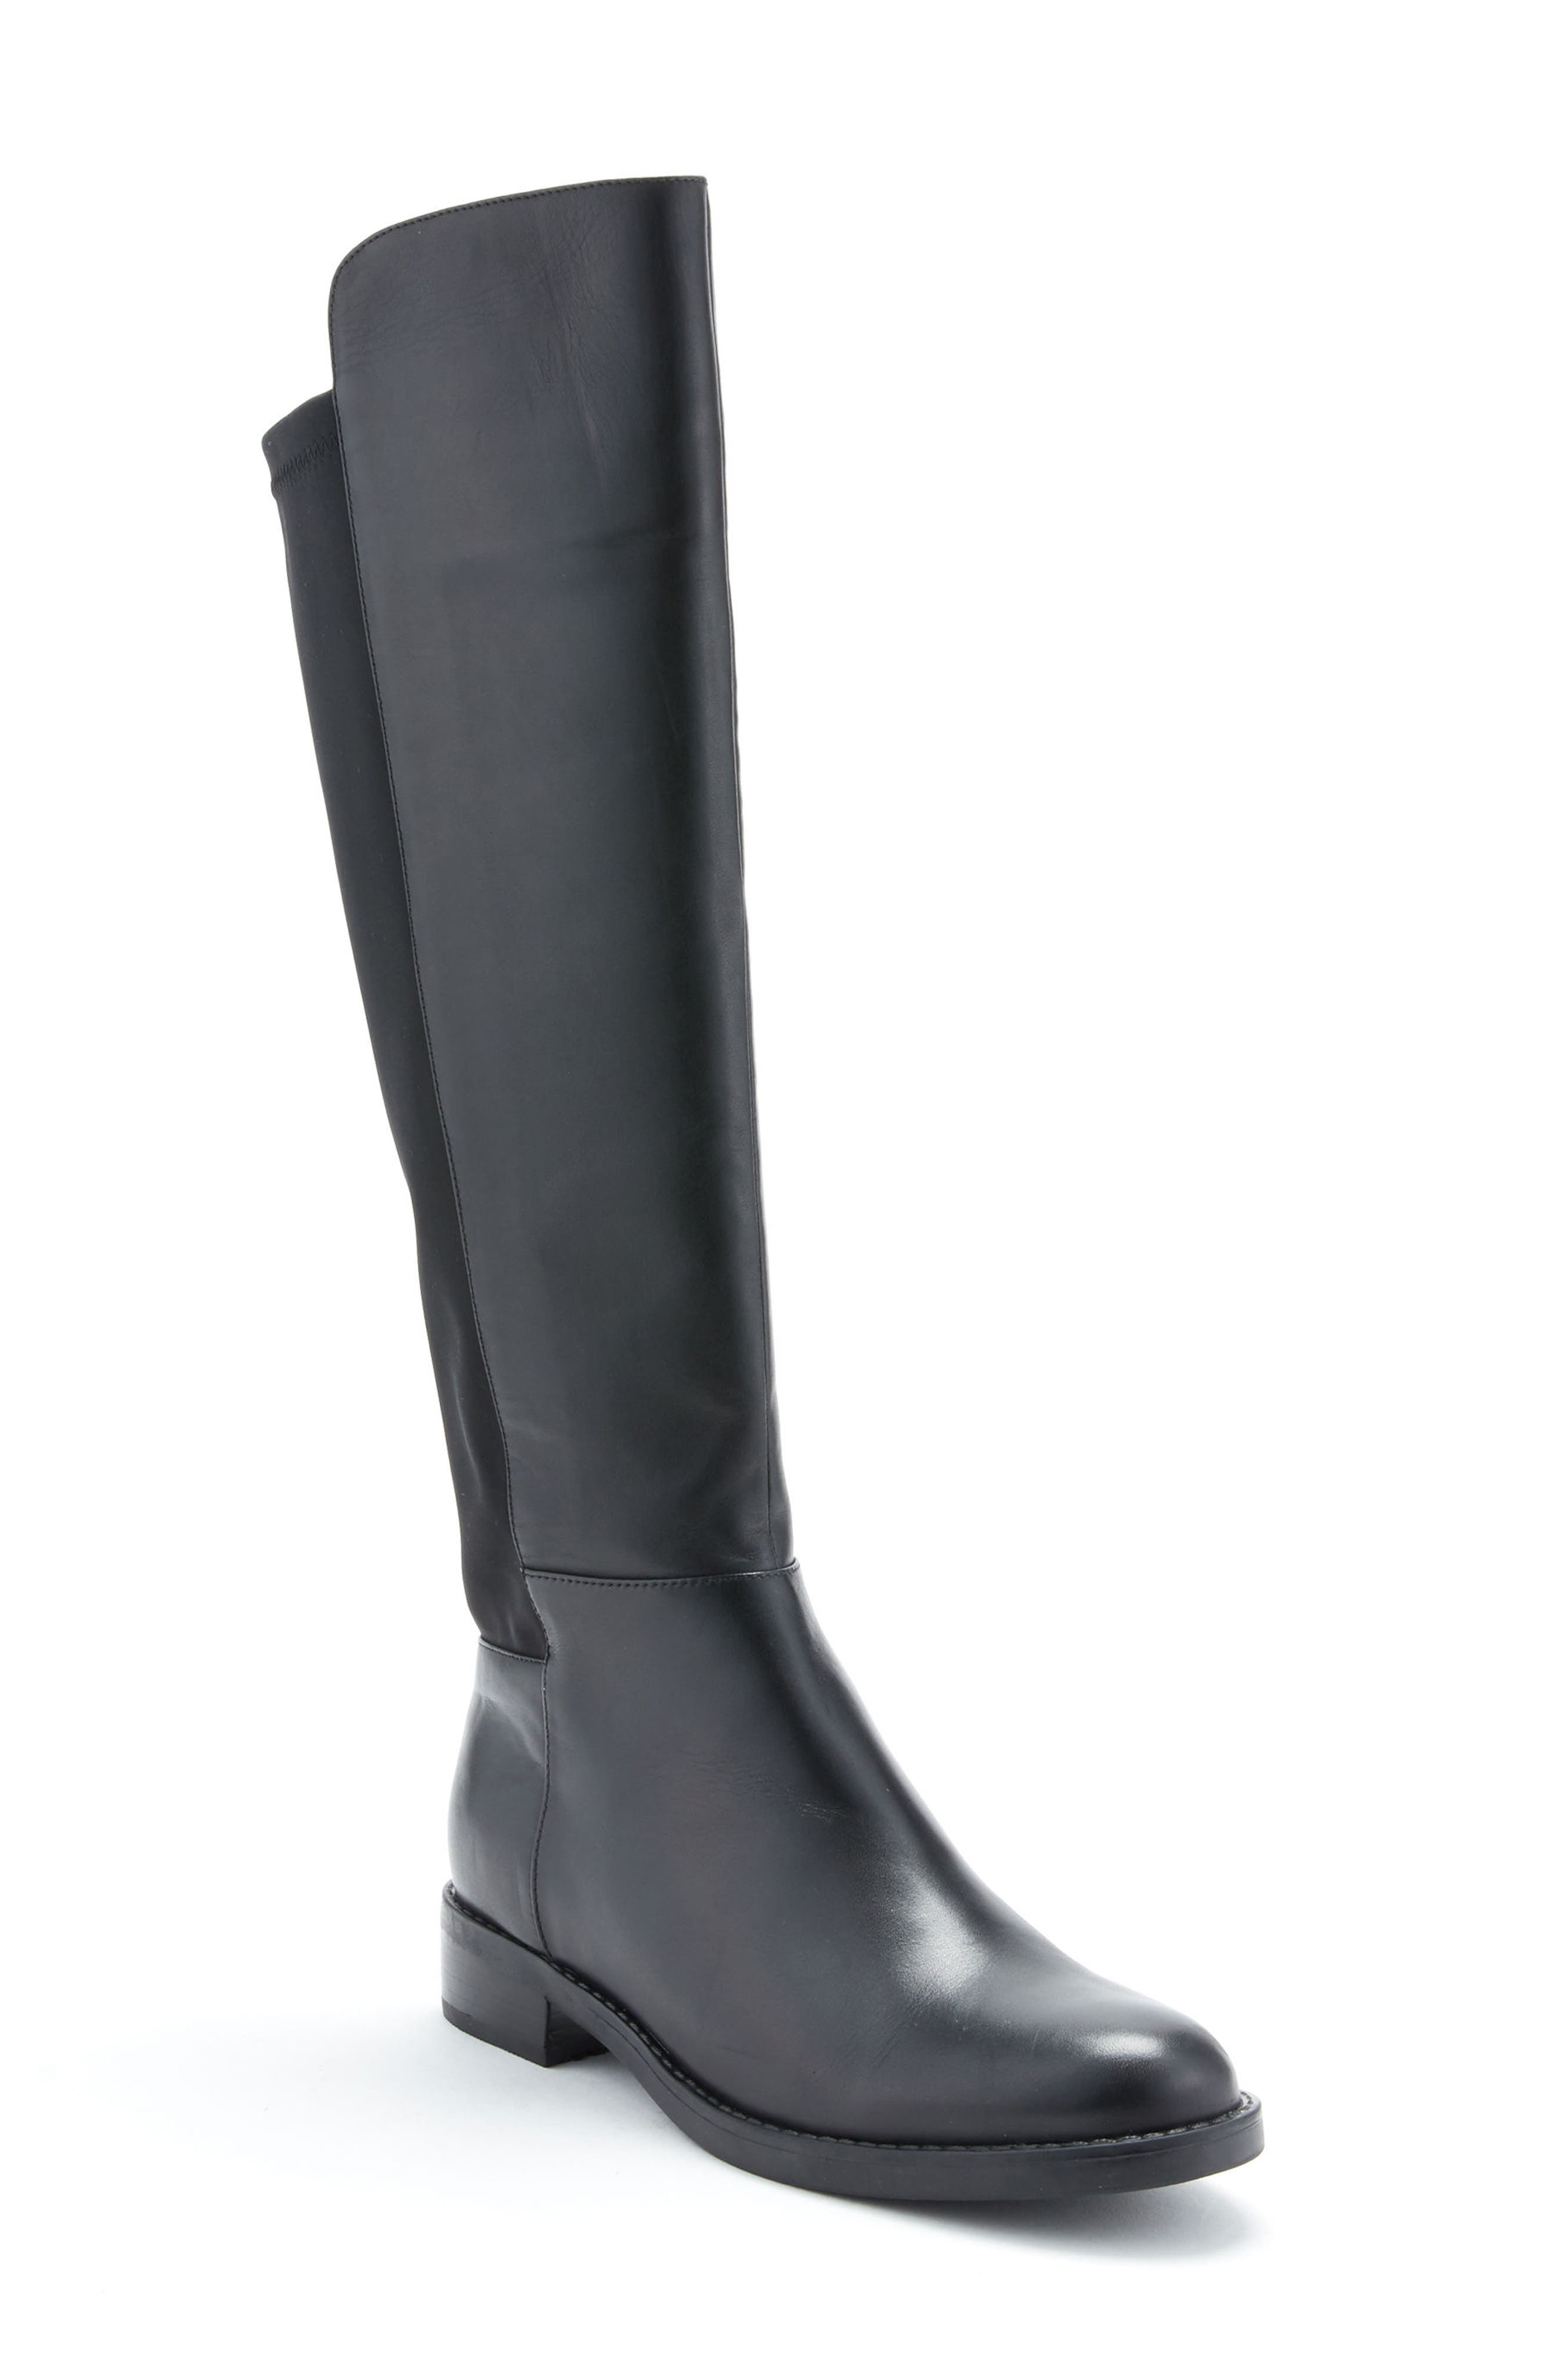 Blondo Ellie Waterproof Knee High Riding Boot (Women)